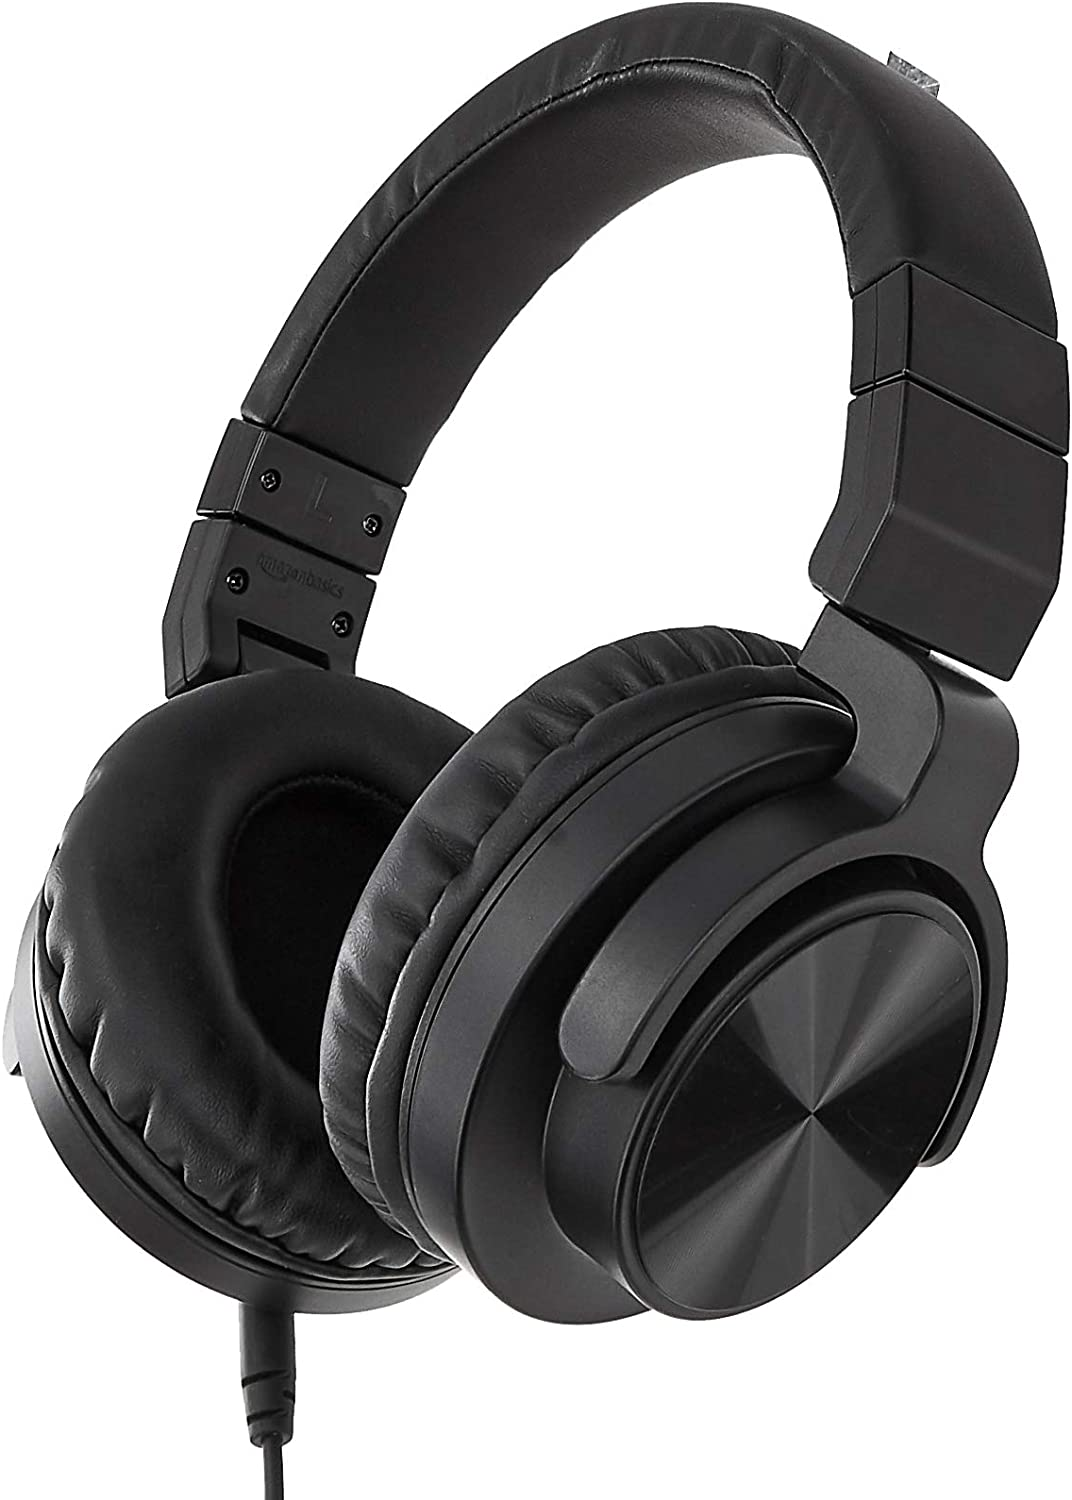 AmazonBasics Over-Ear Studio Monitor Headphones - Black